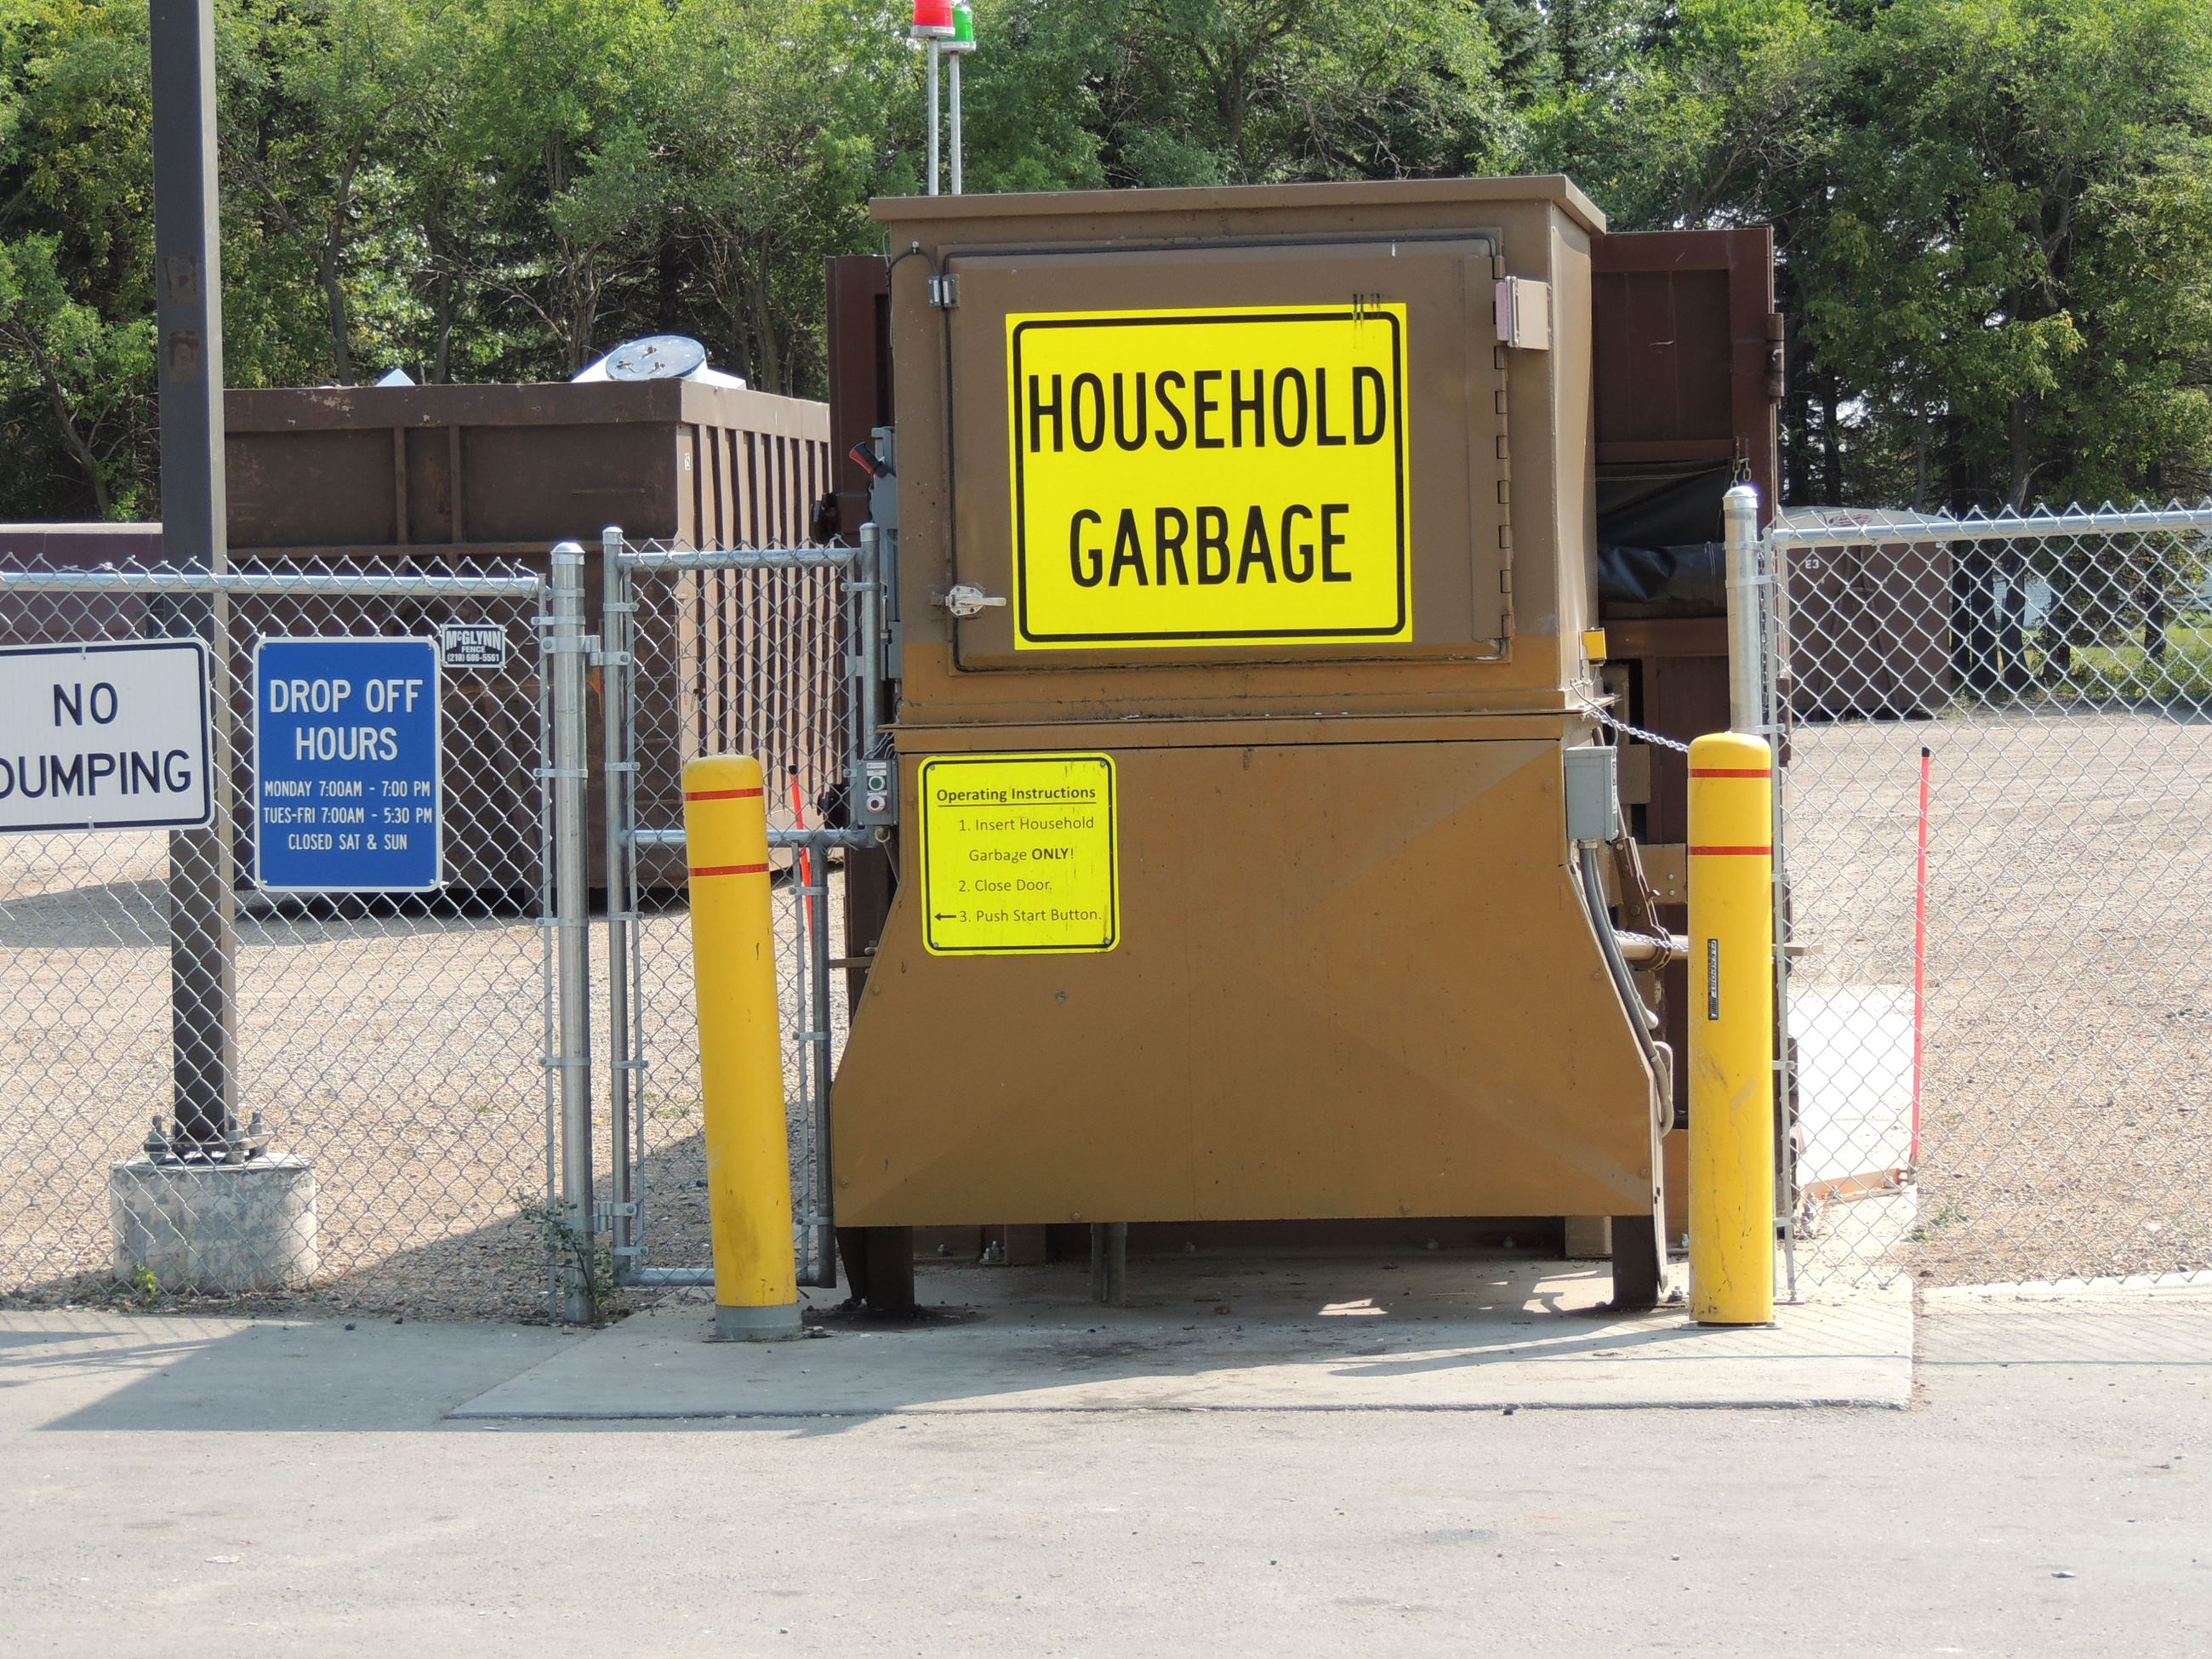 Household Garbage Drop-Off Compactor - Available 24/7